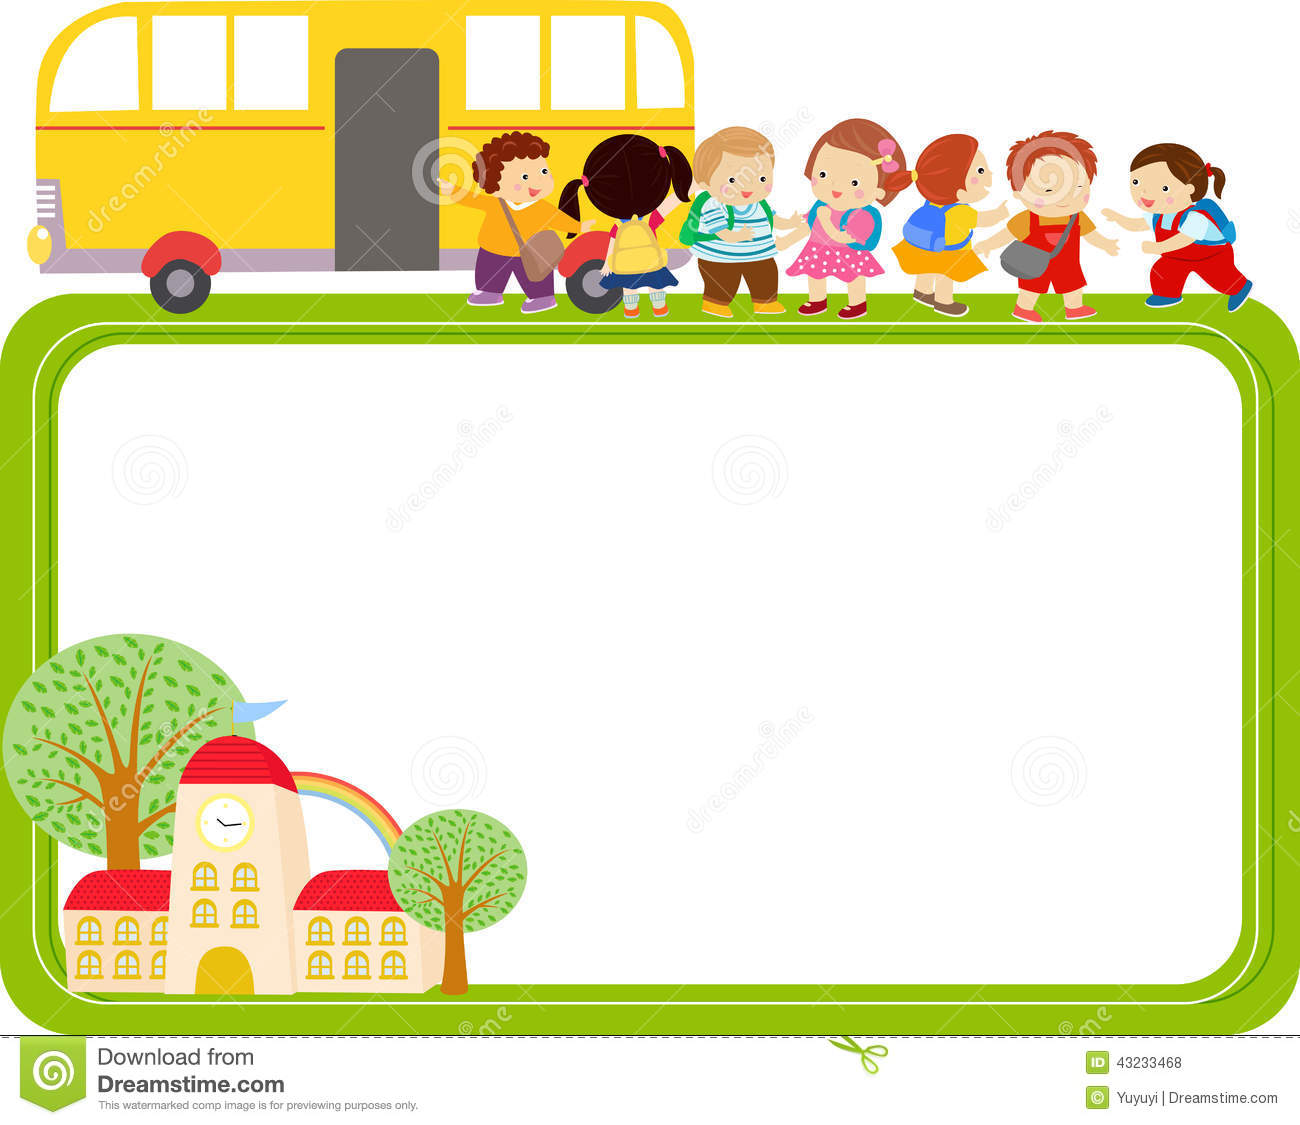 Cute baby storybook frame clipart image royalty free Cute school clipart frame - ClipartFox image royalty free